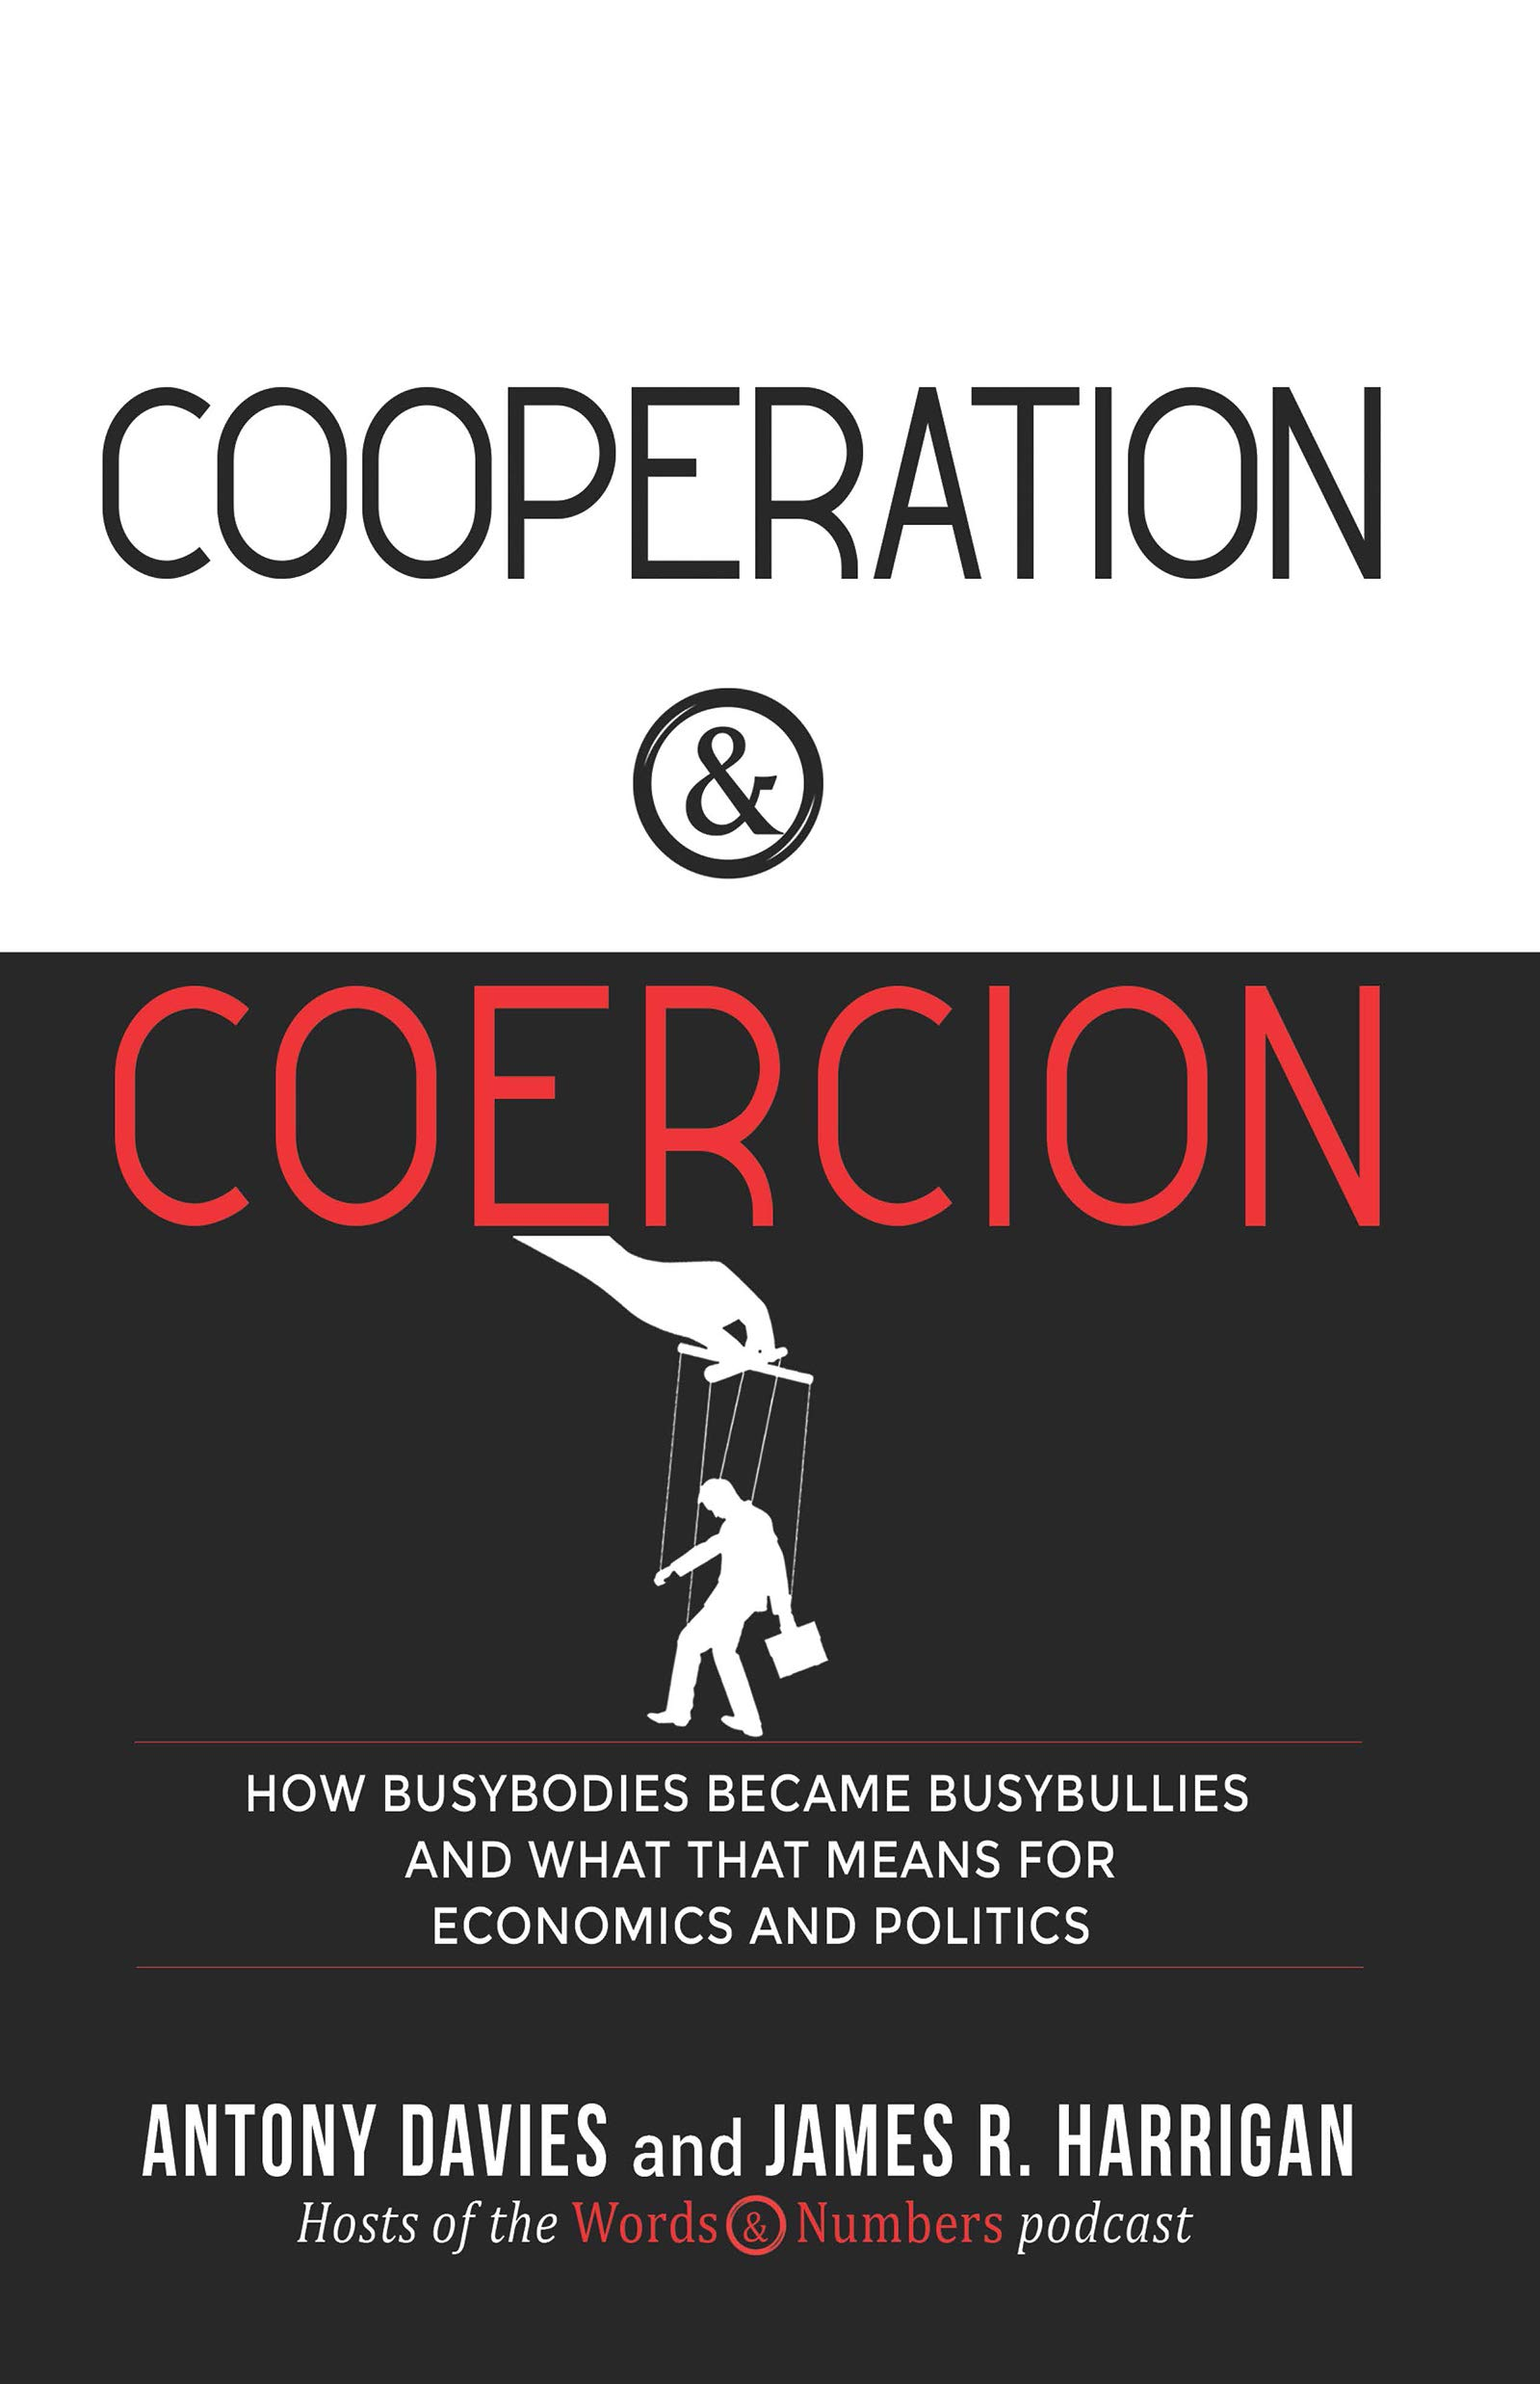 Cooperation & Coercion: How Busybodies Became Busybullies and What that Means for Economics and Politics